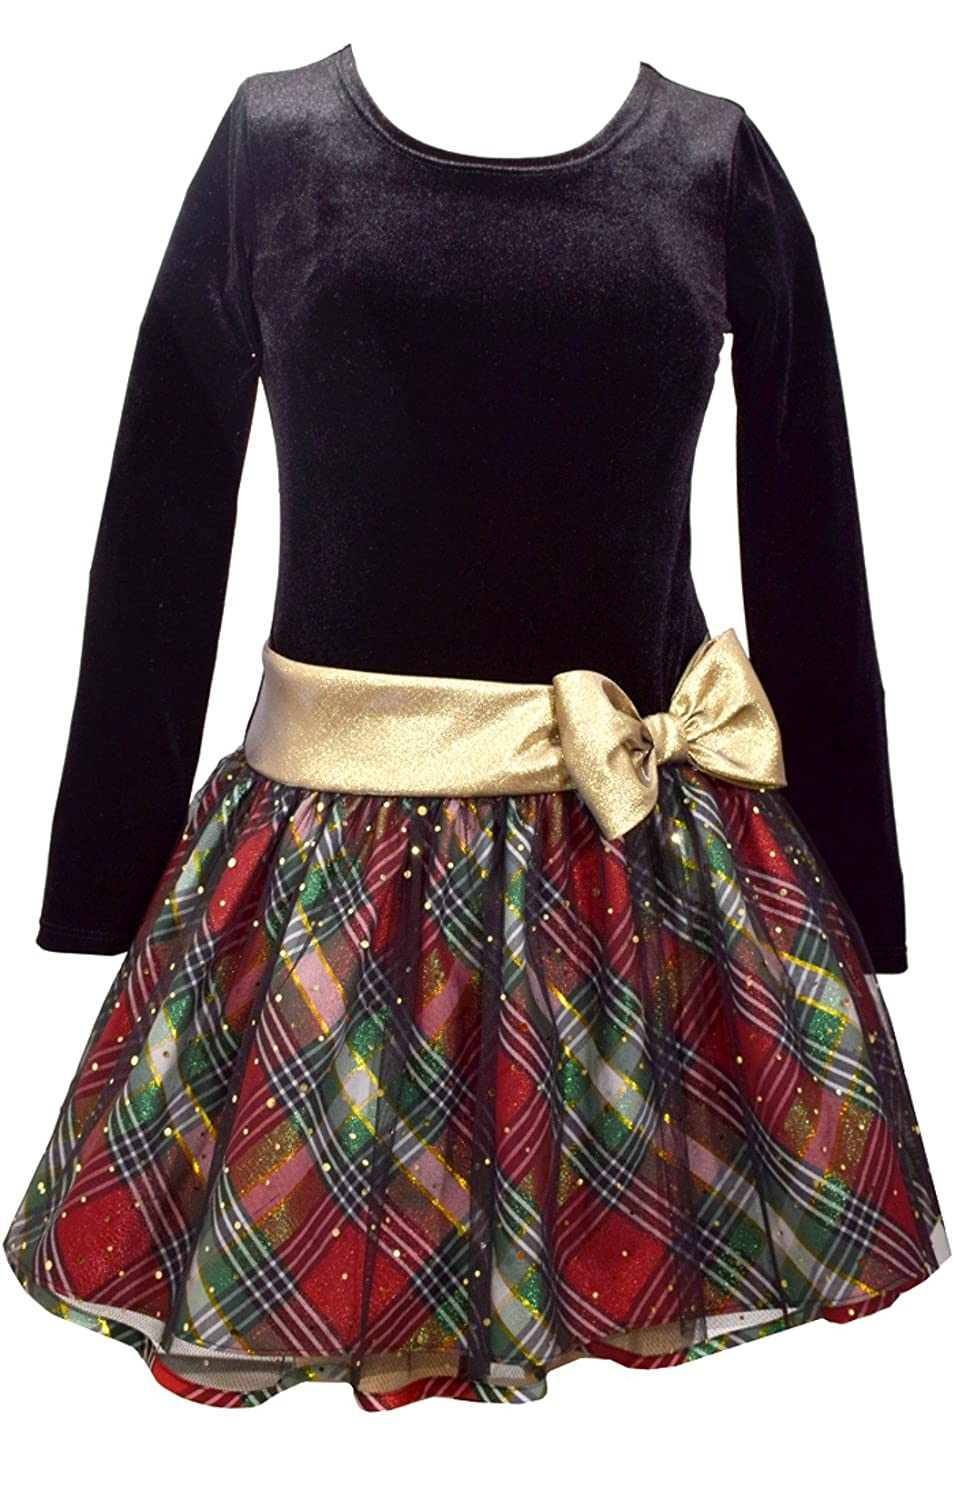 b8d909a65ed6 Gorgeous Bonnie Jean girls special occasion holiday dress features black  stretch velour bodice with deep red and green plaid taffeta skirt.